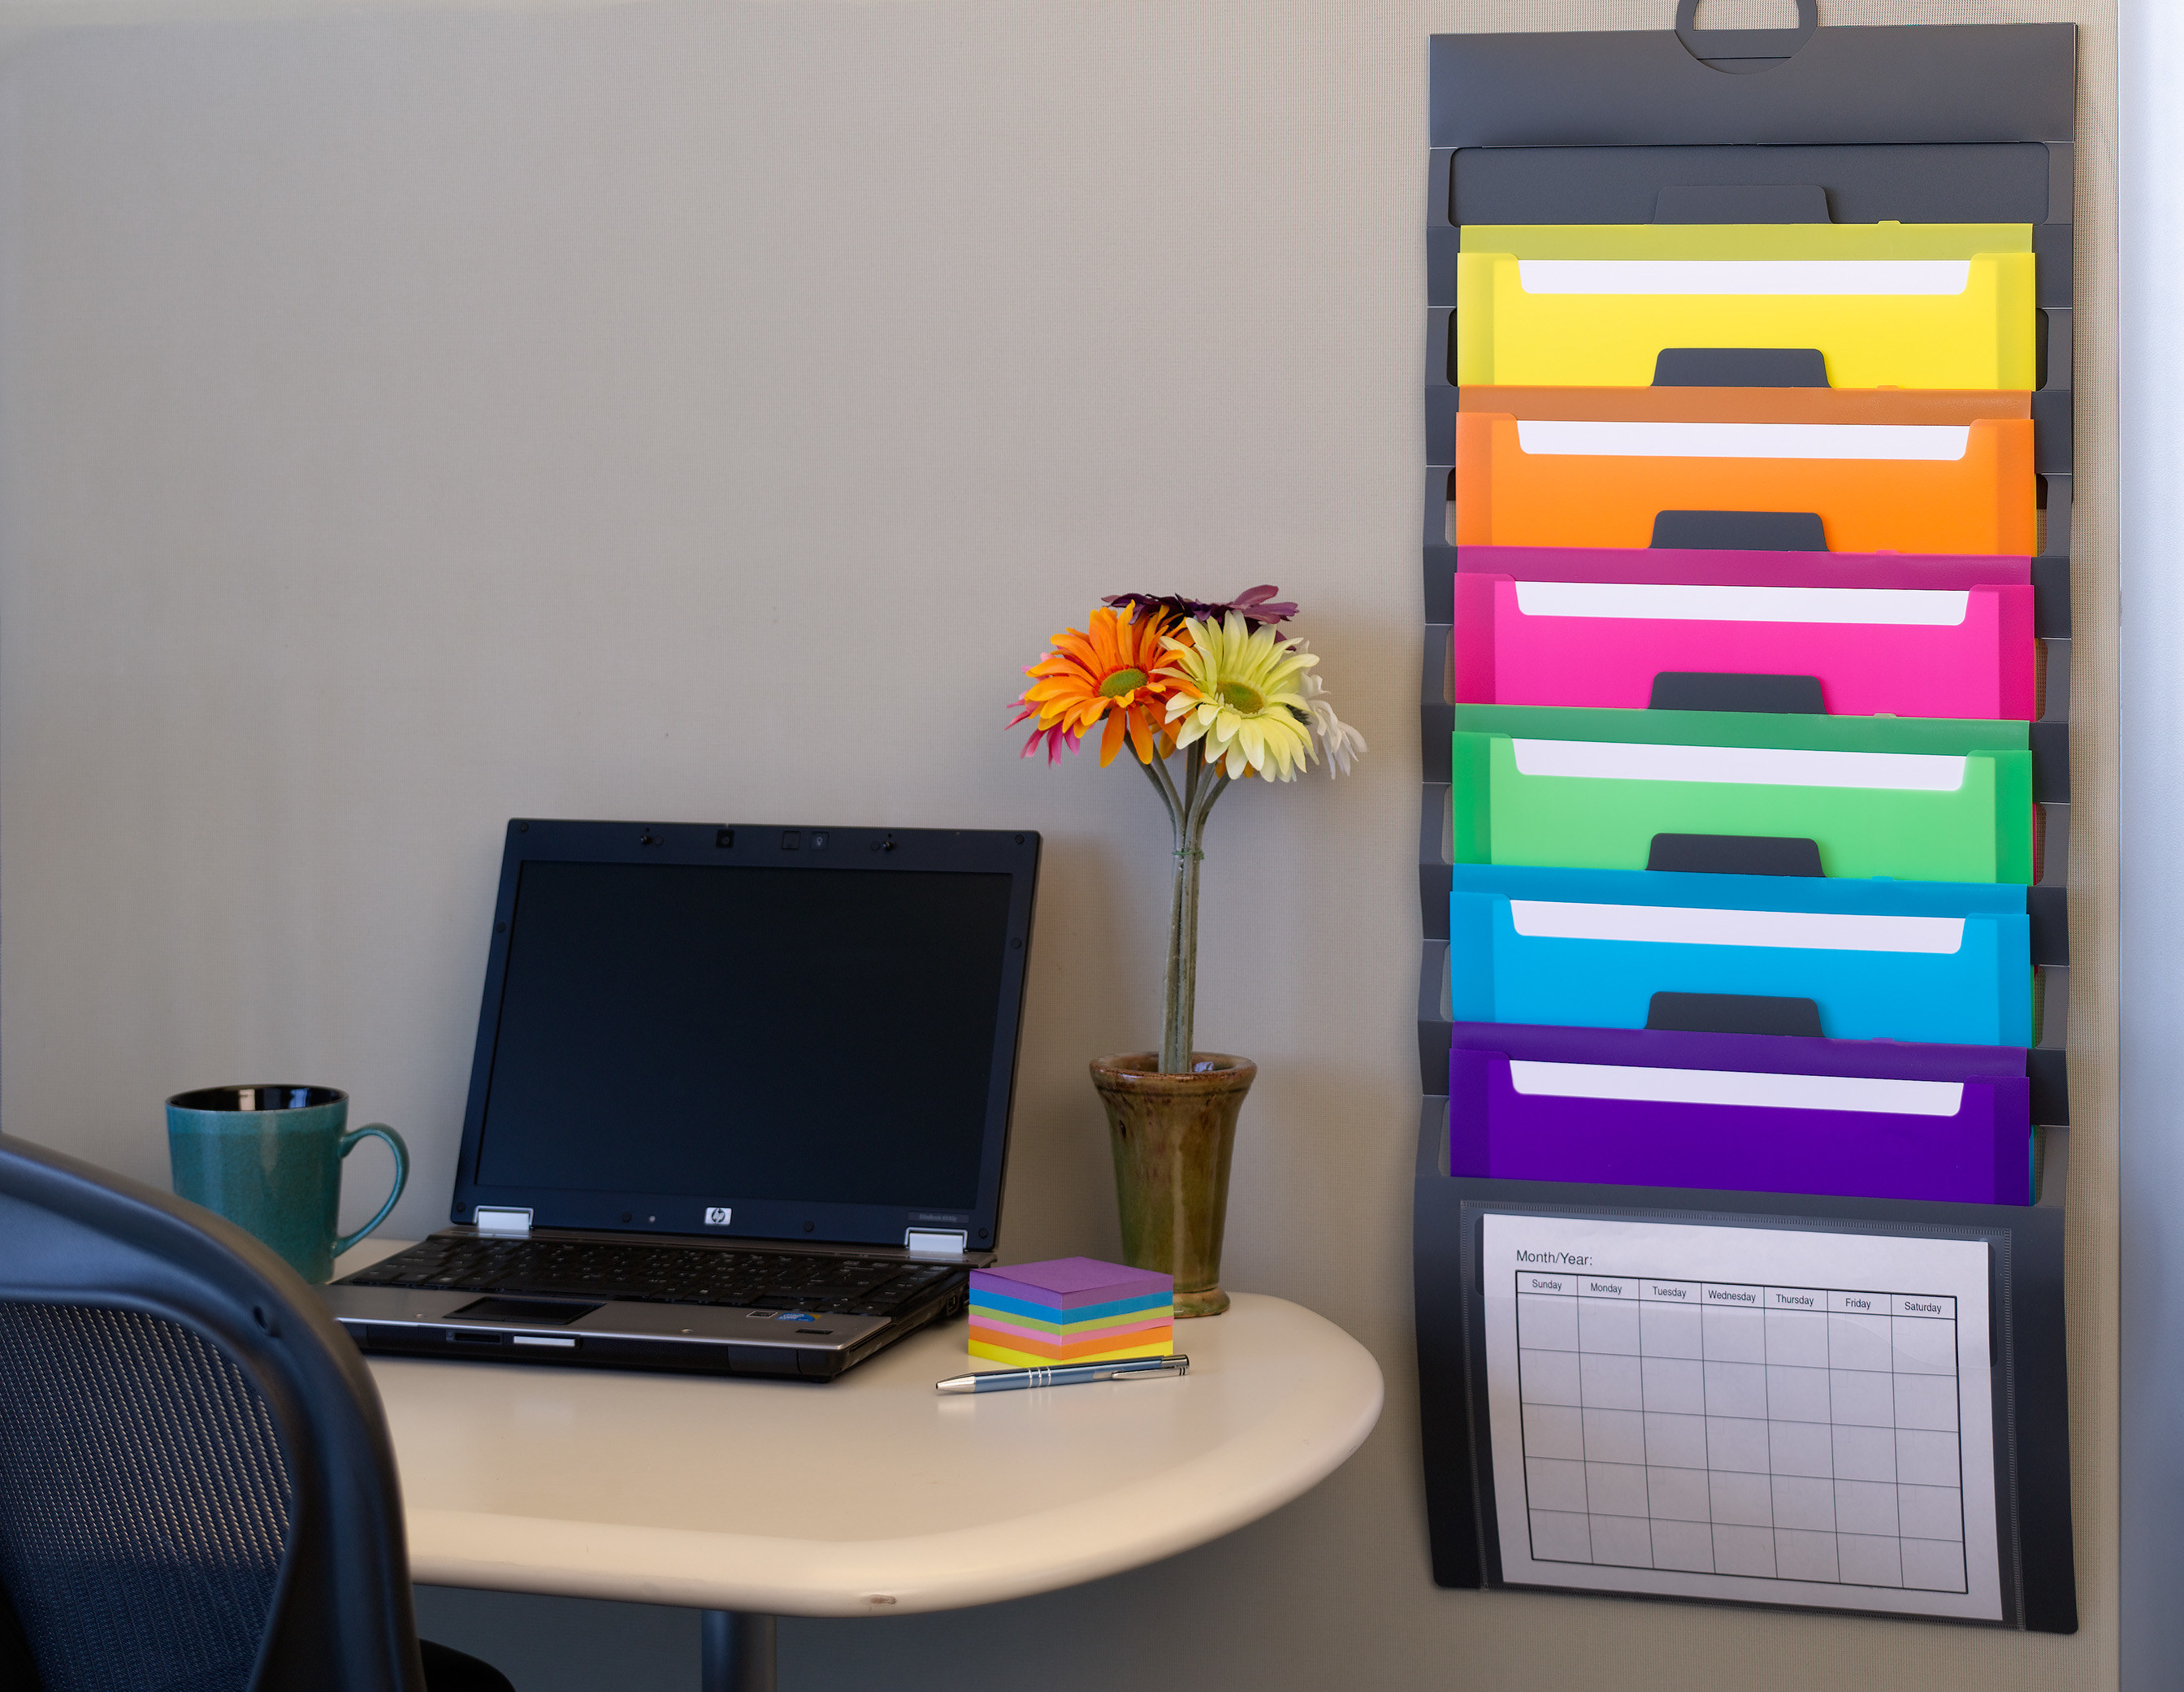 The colorful cascading wall organizer